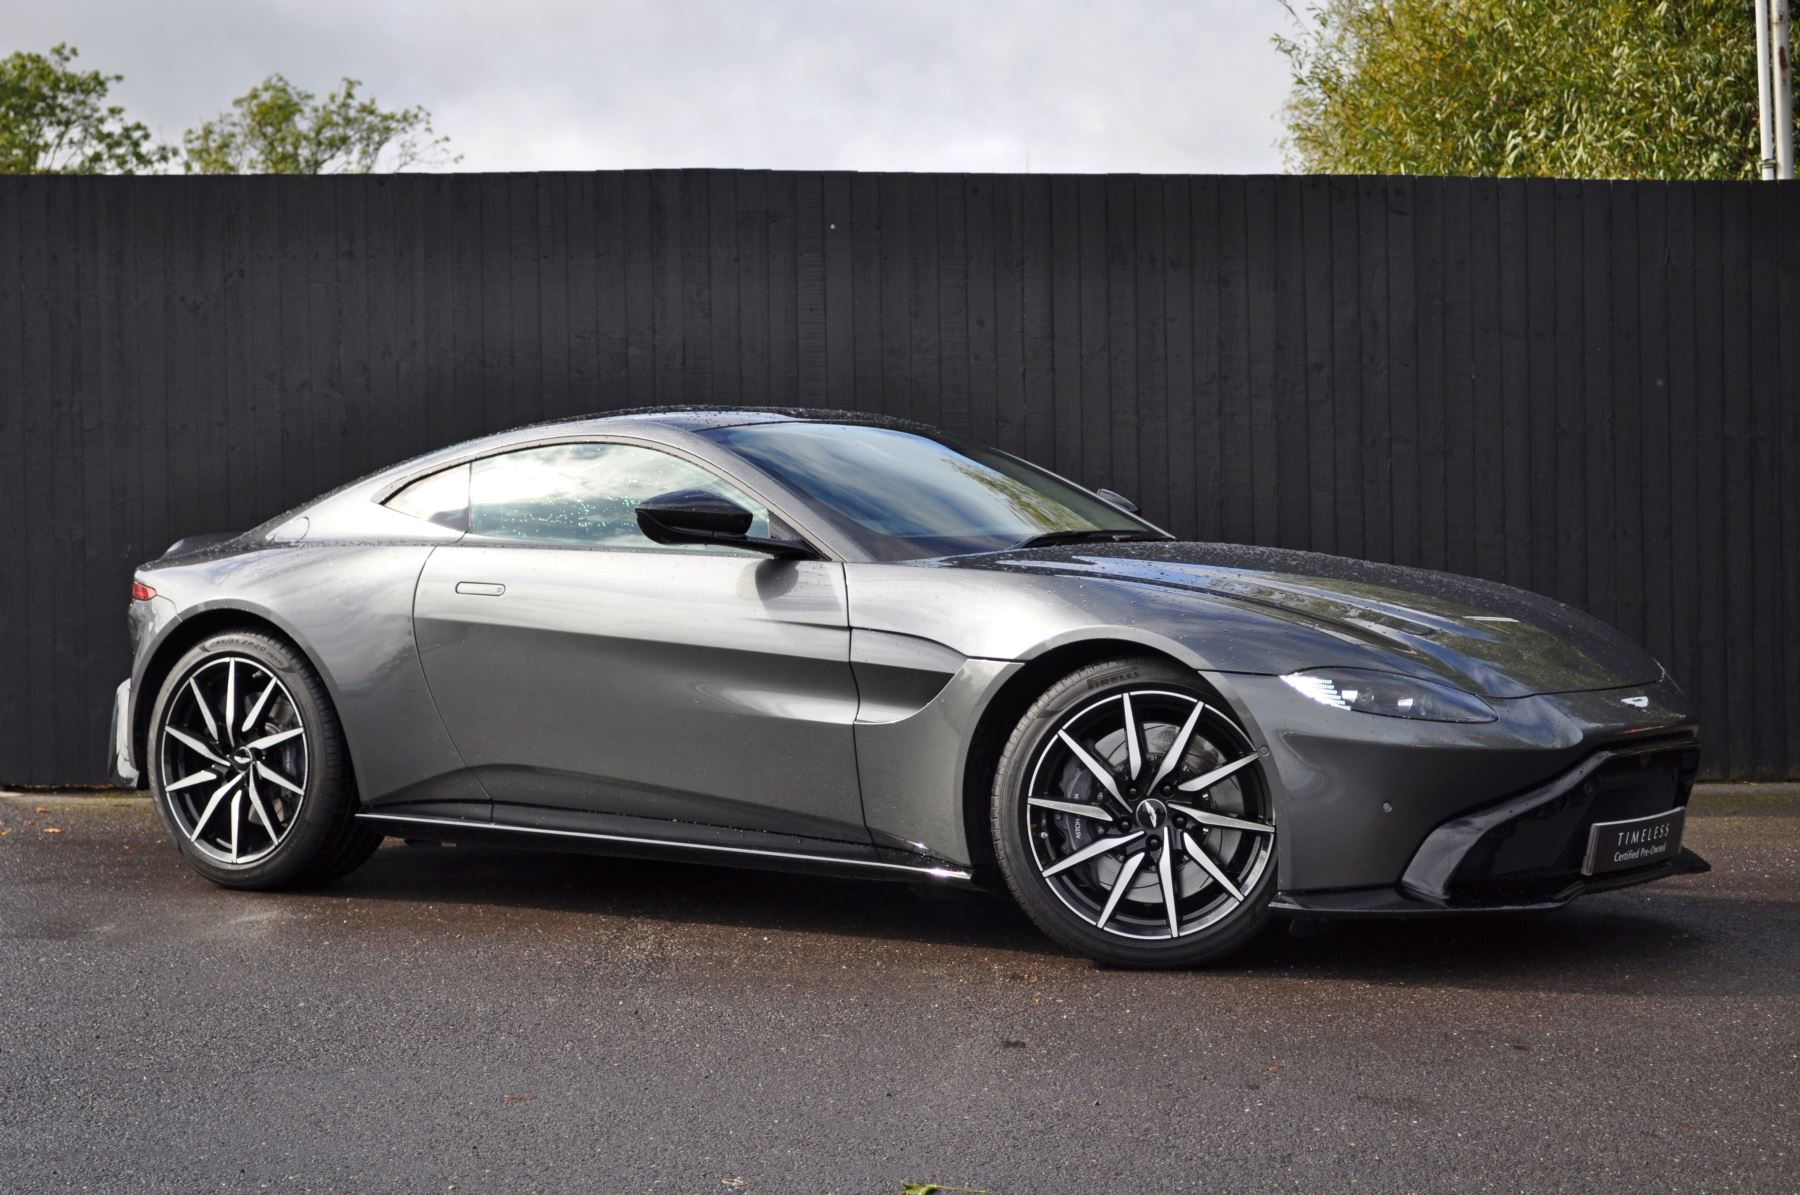 Aston Martin New Vantage 2dr ZF 8 Speed image 3